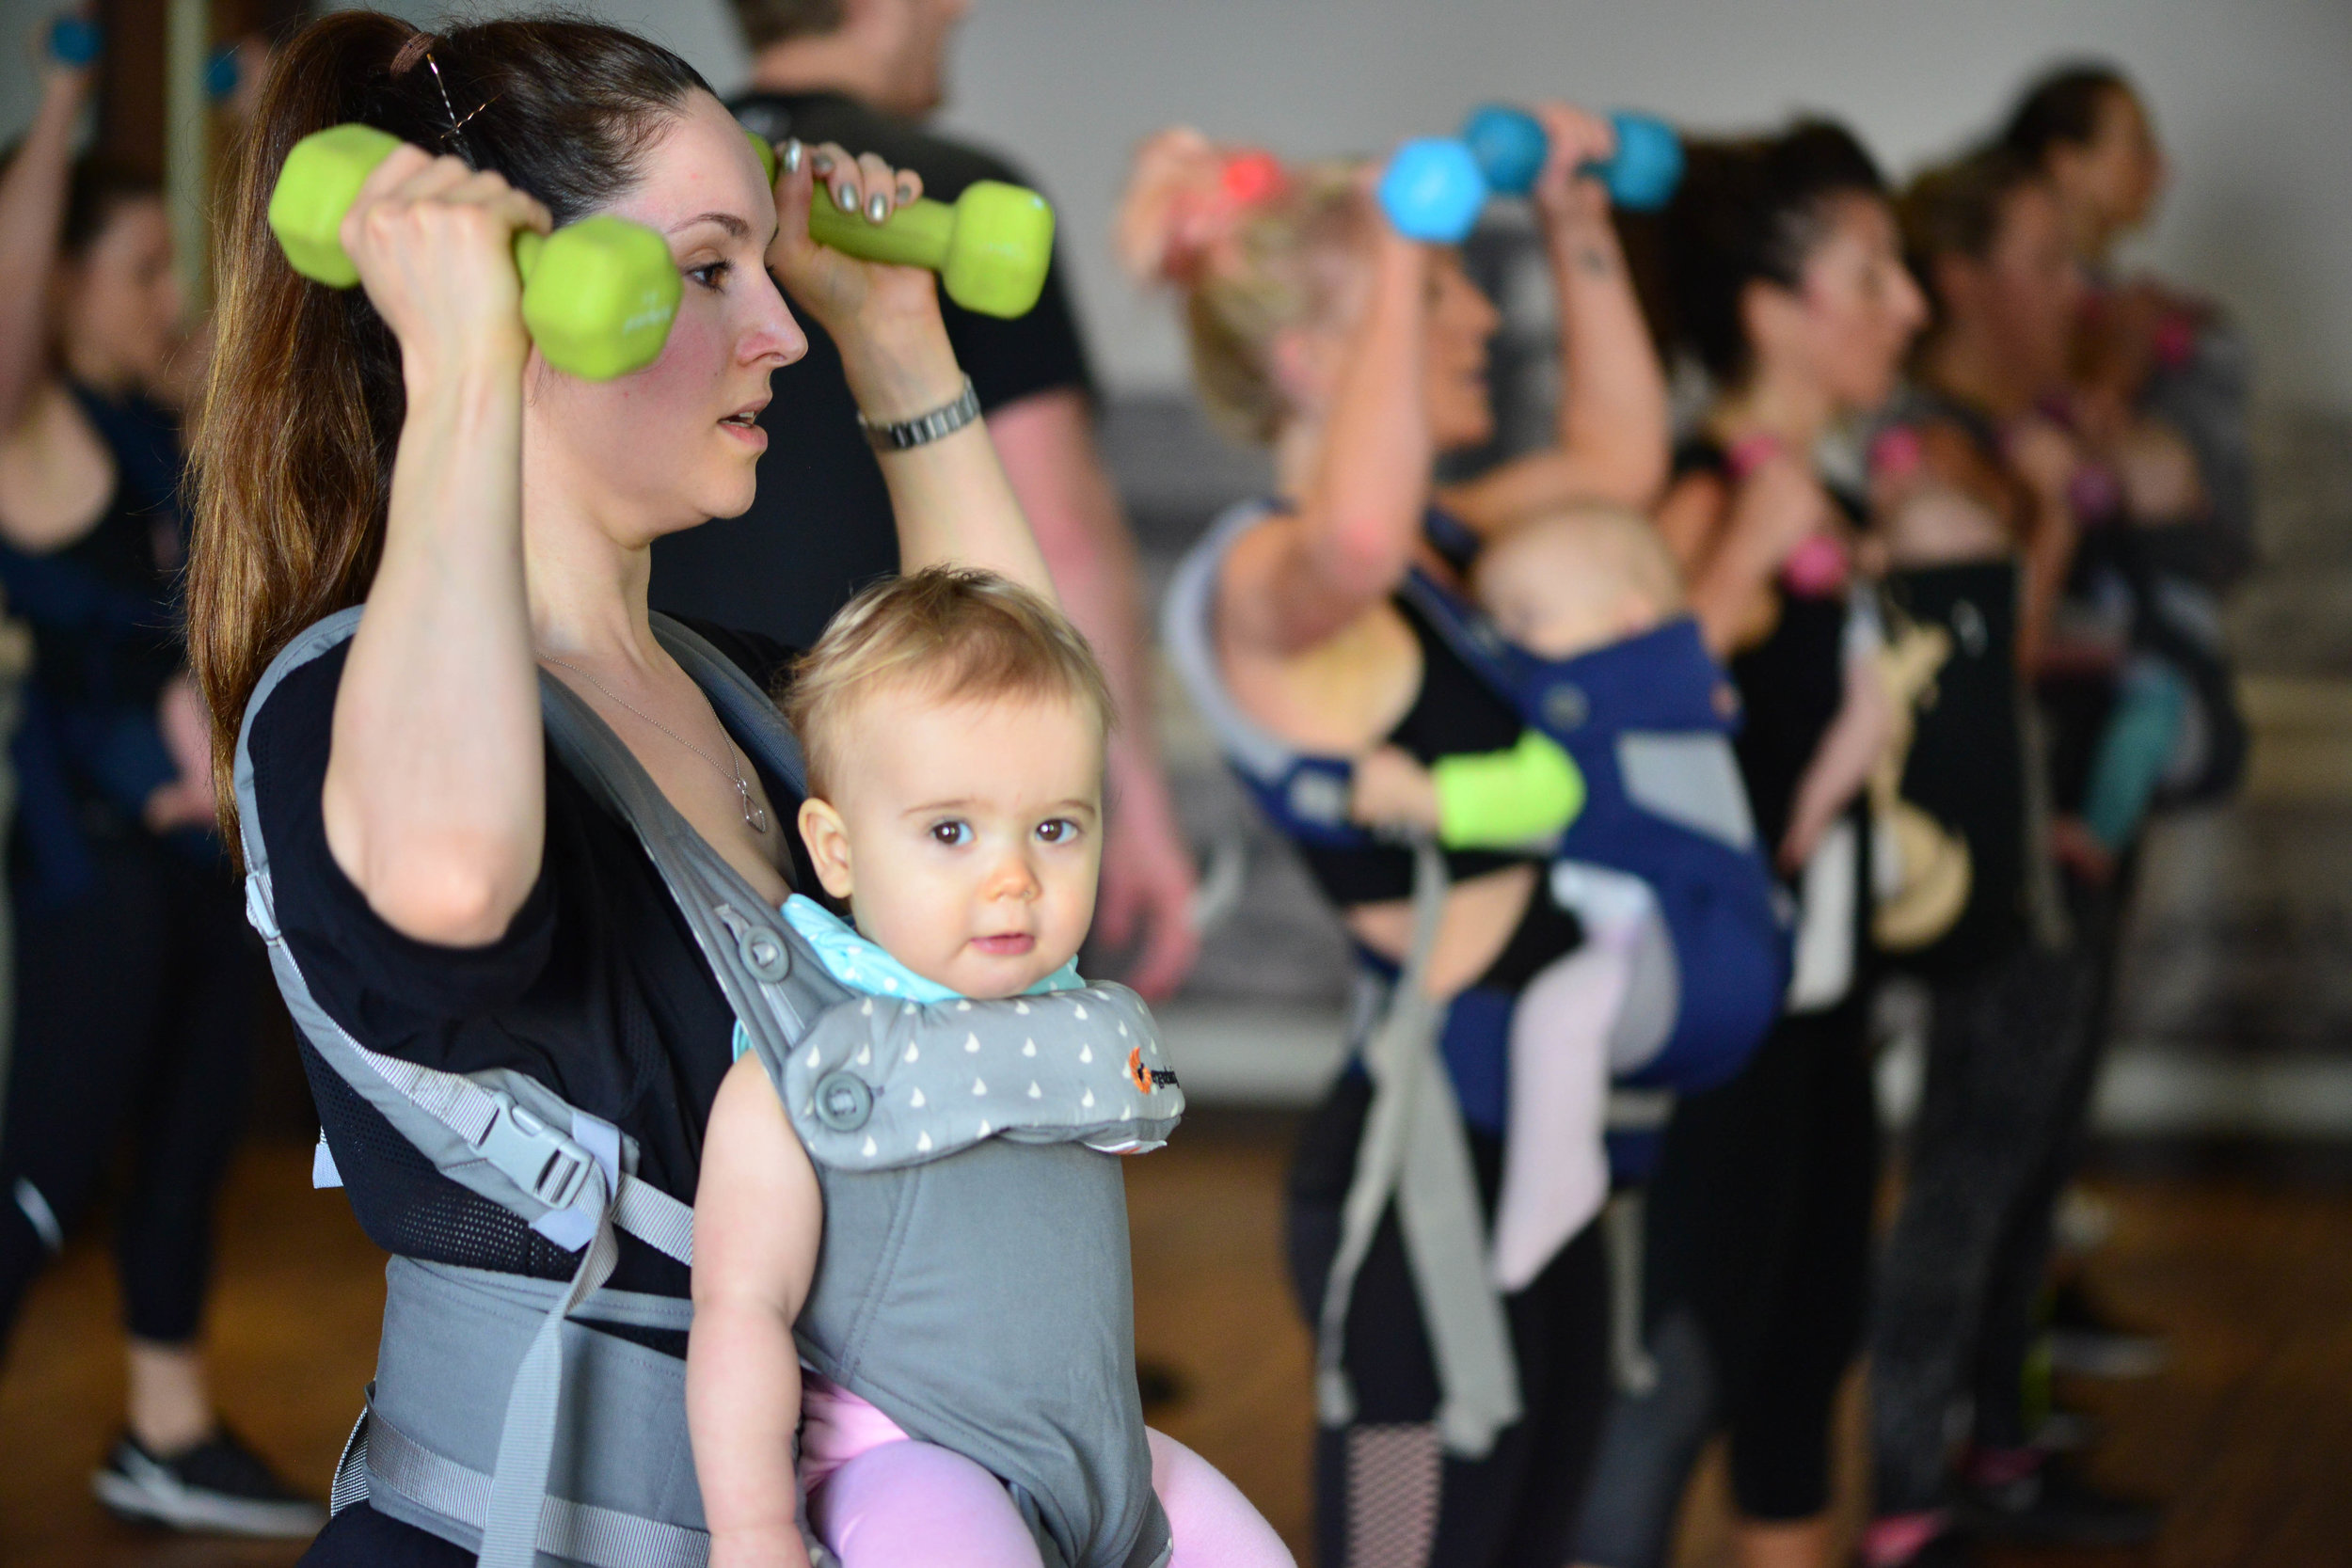 LIve classes - CARiFiT Live classes are a fun, effective and results driven workout without the need for separation or addition childcare costs.Classes that get results, foster friendships and provide expert support at the time new mums need it most of all.